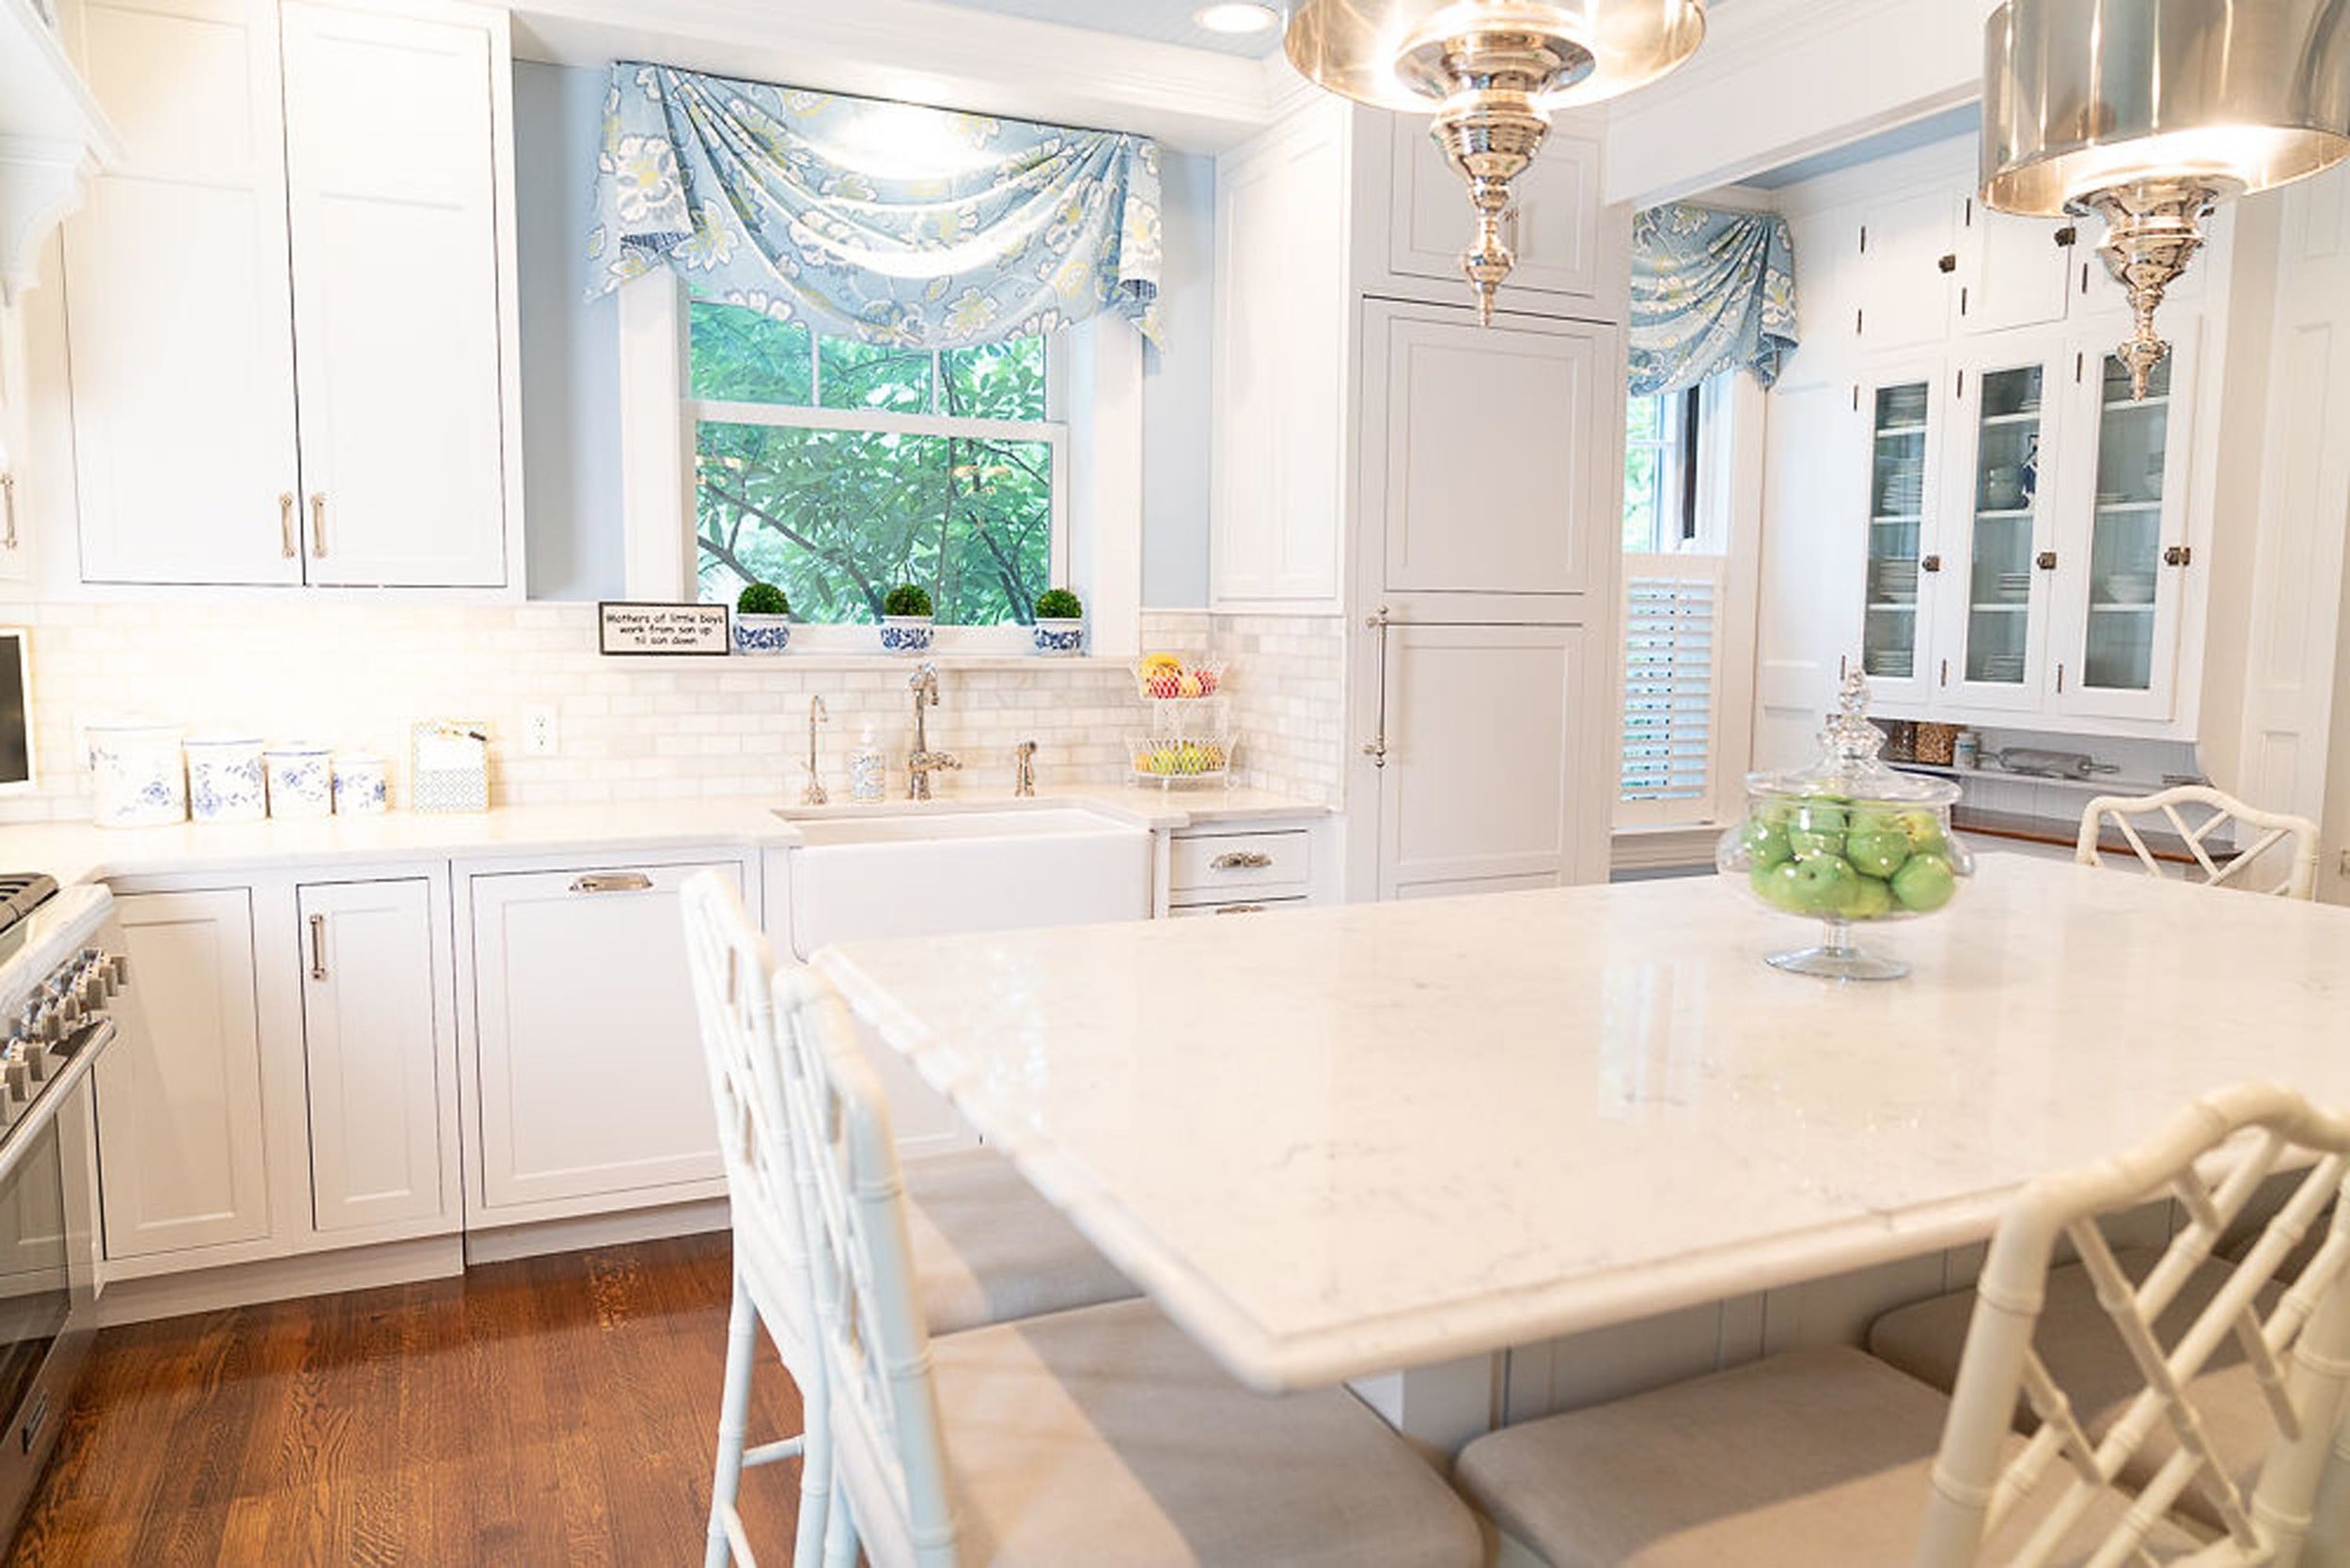 White kitchen room interior with white wooden cabinets and hardwood floor